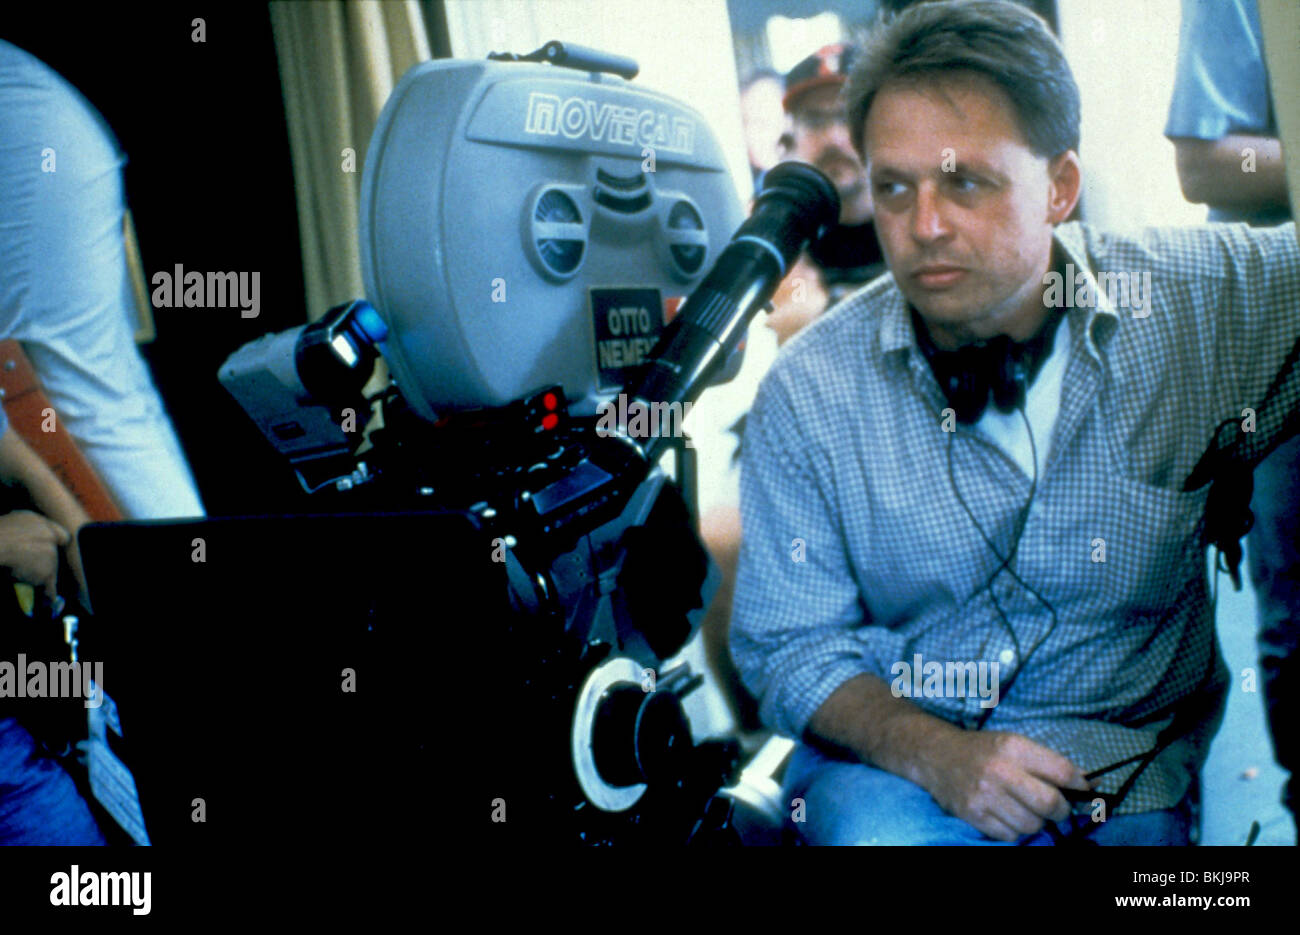 FILMING BILL CONDON (DIR) O/S 'GODS AND MONSTERS (THE FATHER OF FRANKENSTEIN) (1998)' CDON 001 - Stock Image